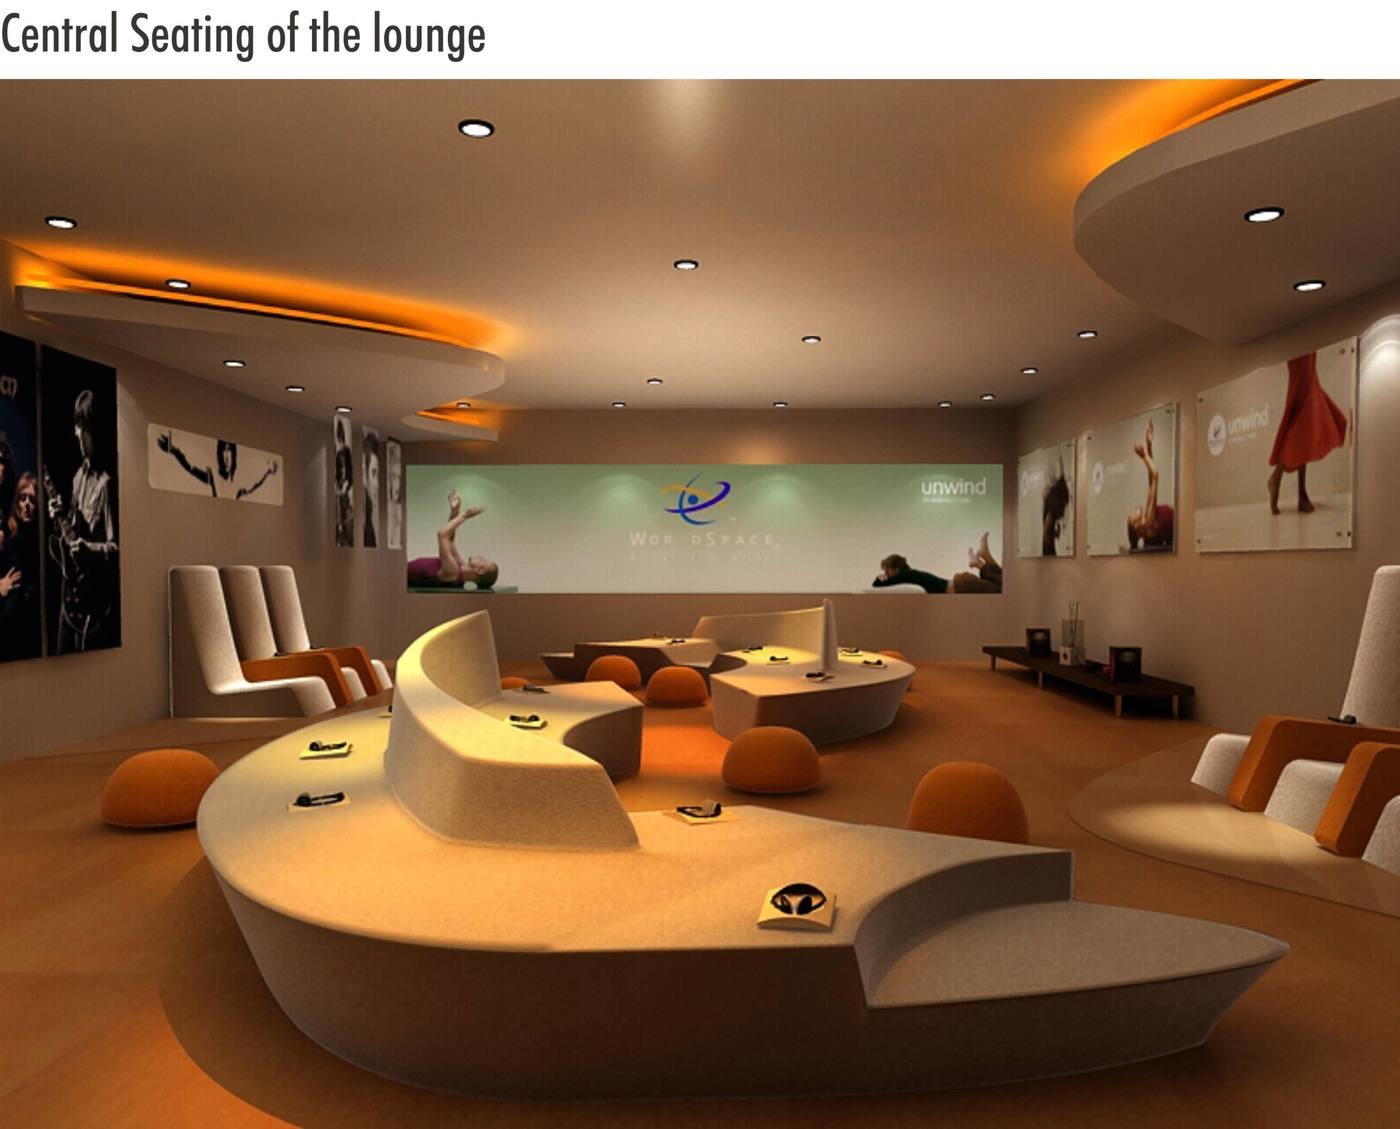 Final Look Of The Seating  Project Done At Shark Design Studio.   The  Central Seating Was Designed As A Sculptural Element To Be The Main Focus  Of The ...